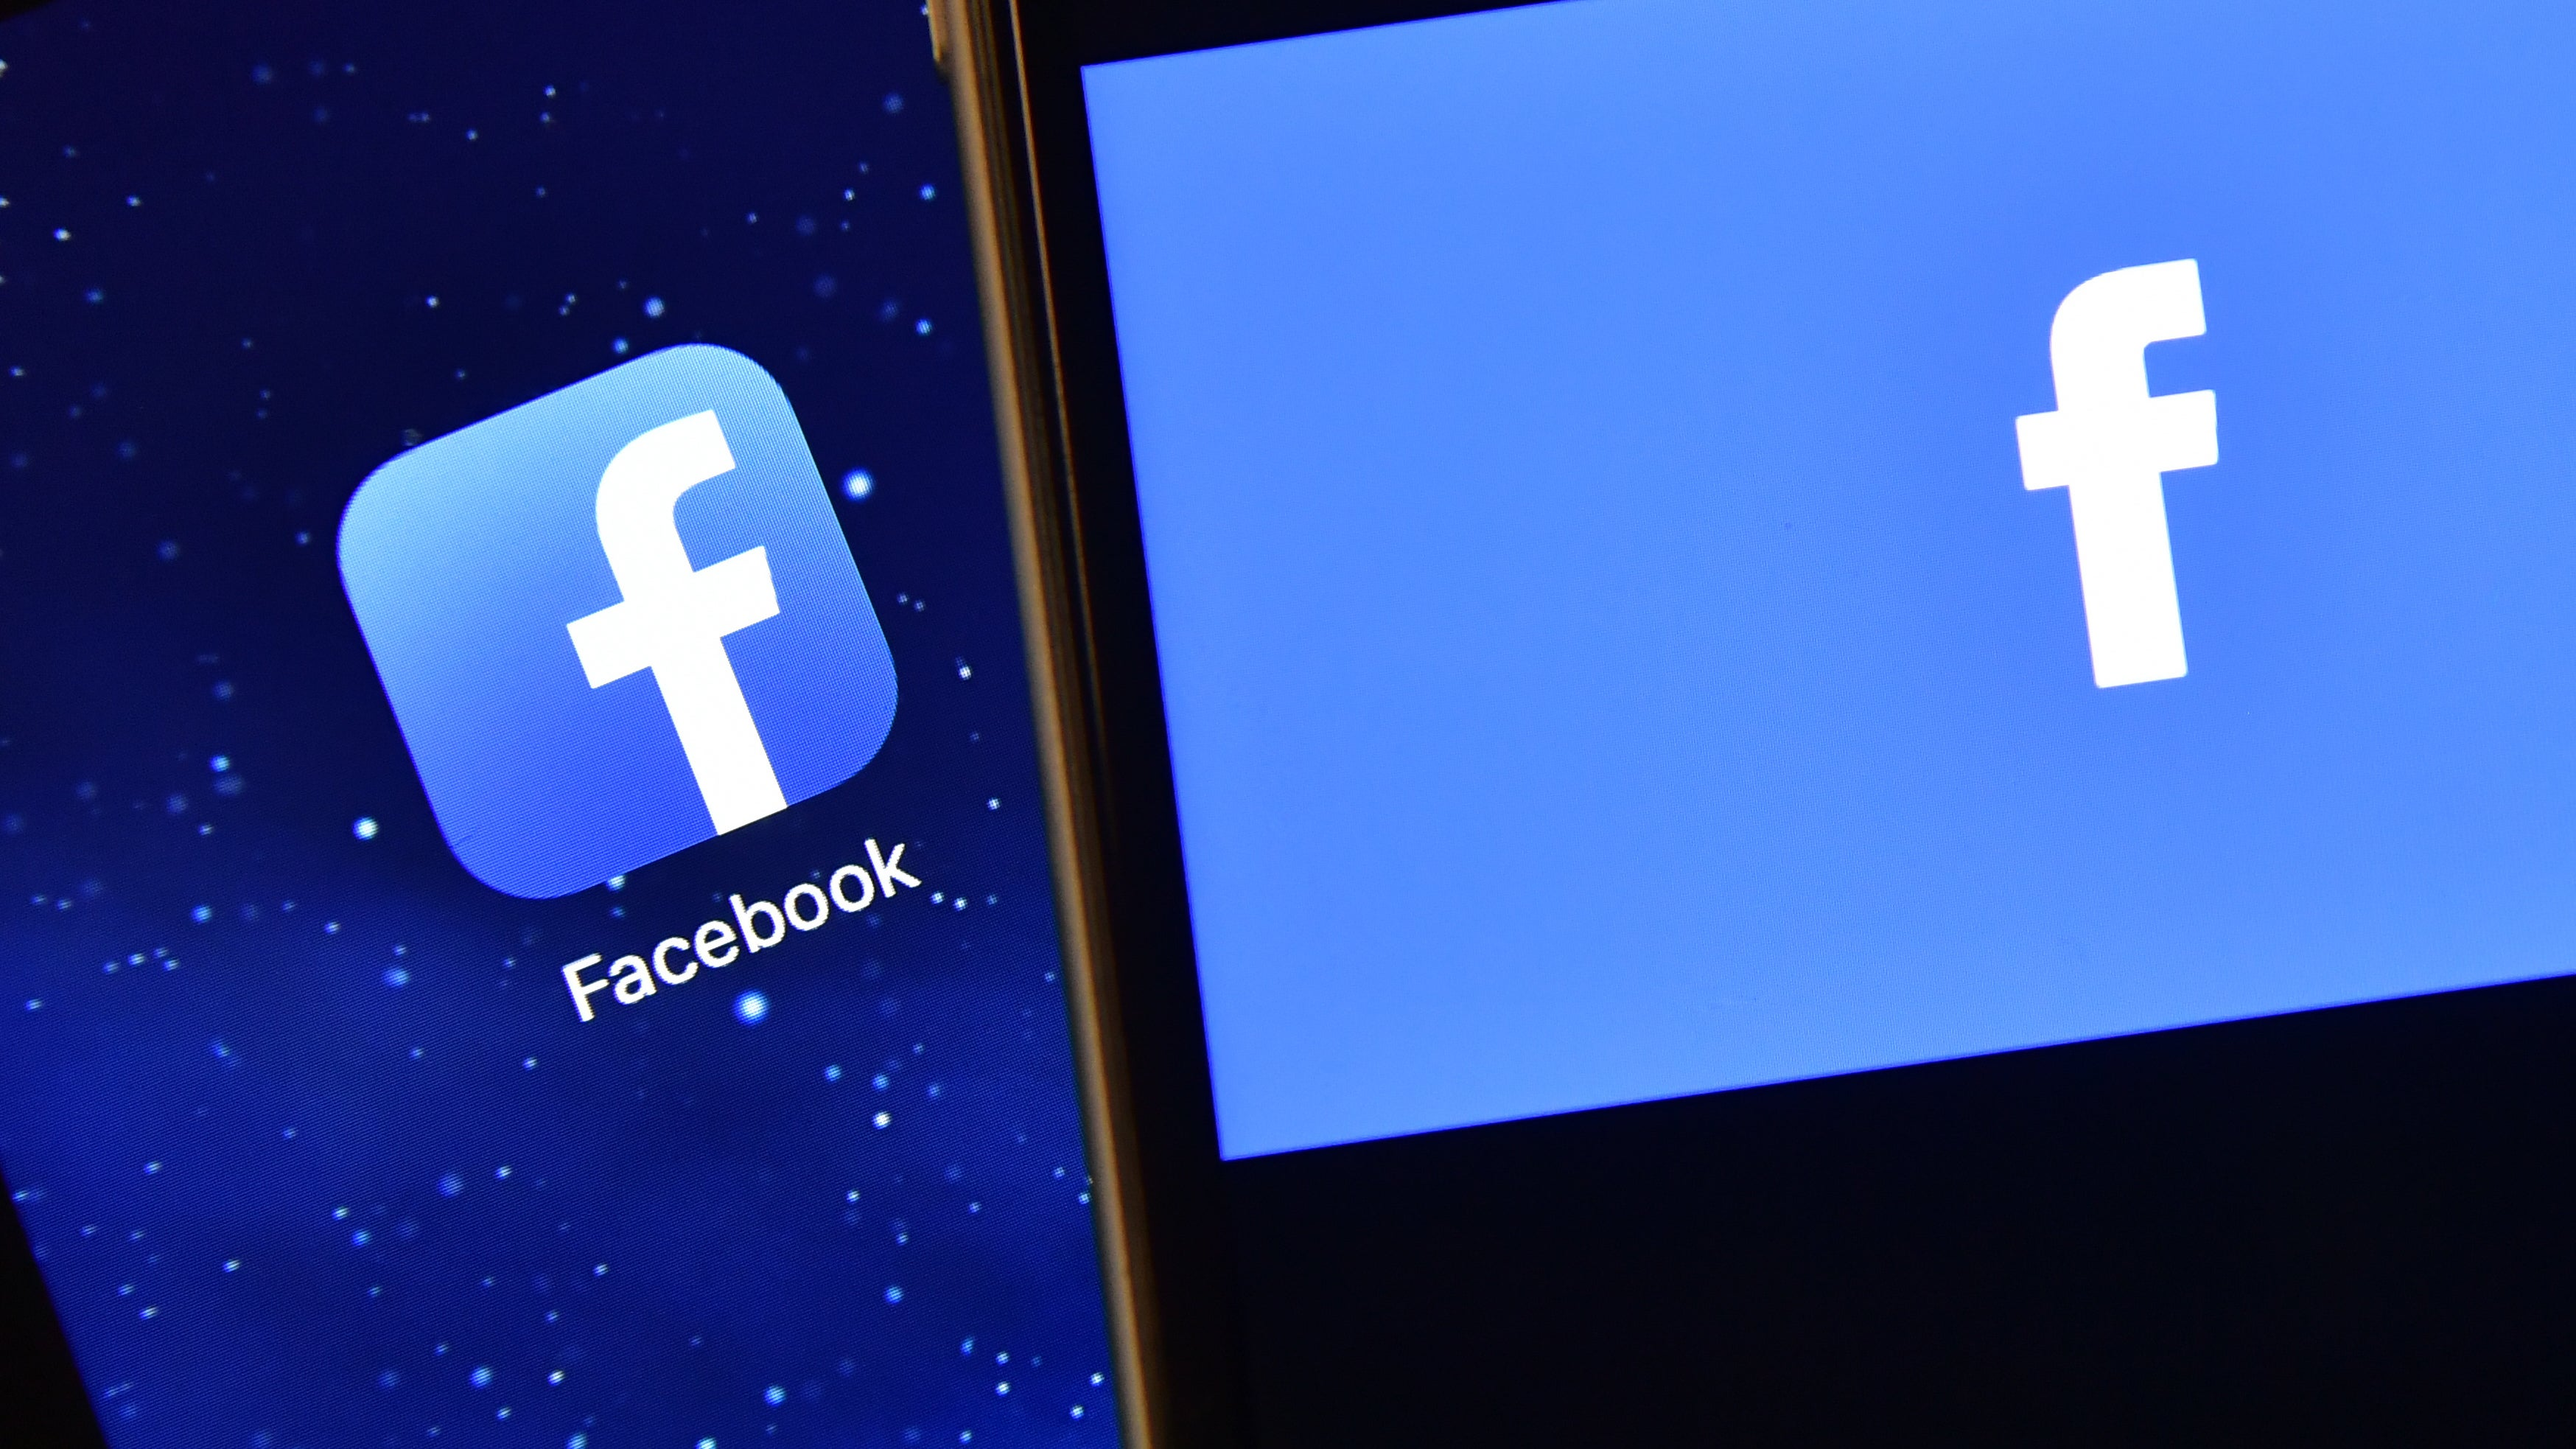 Facebook Removes 5 Accounts Tied To Shady Disinformation Tactics In Alabama Special Election